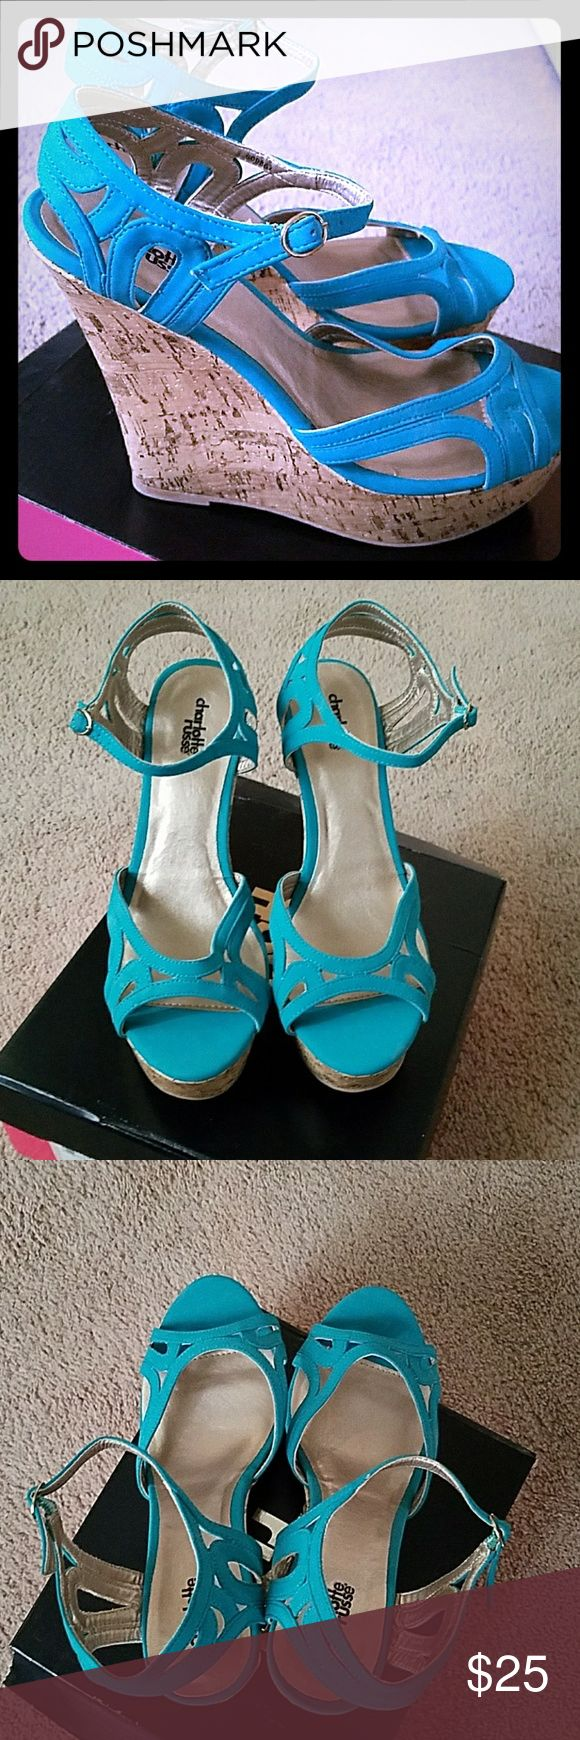 Charlotte russe teal nubuck wedges Brand new strappy teal wedges from Charlotte Russe with cork platform wedges. Size 10. Charlotte Russe Shoes Wedges